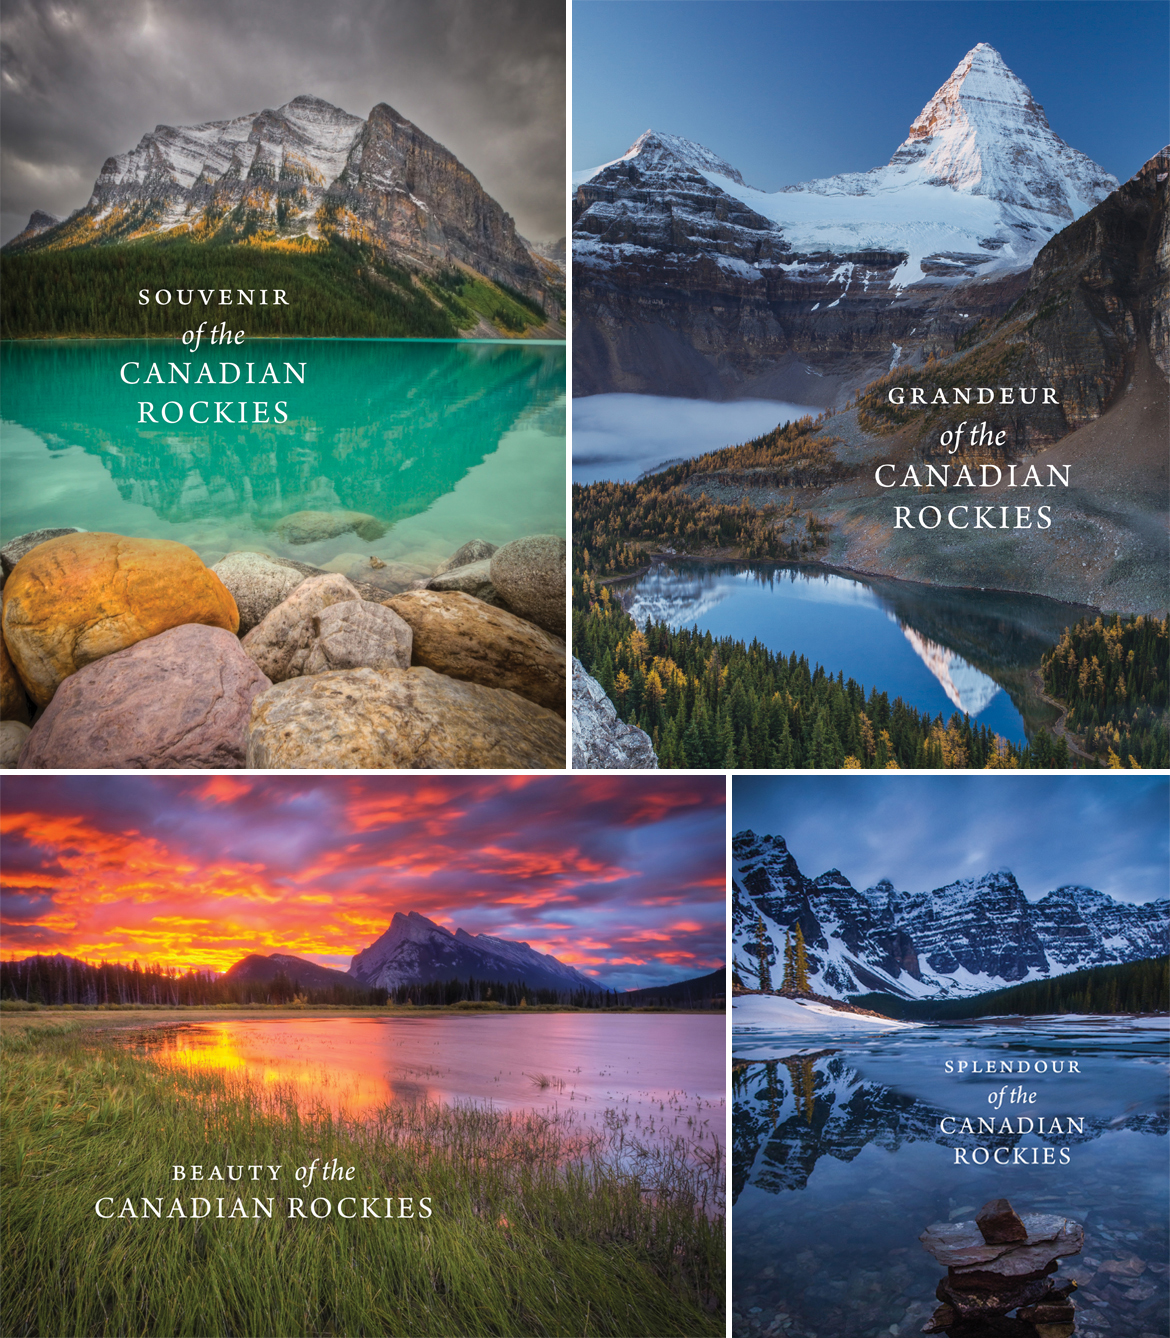 Four new books celebrate Canada's natural beauty